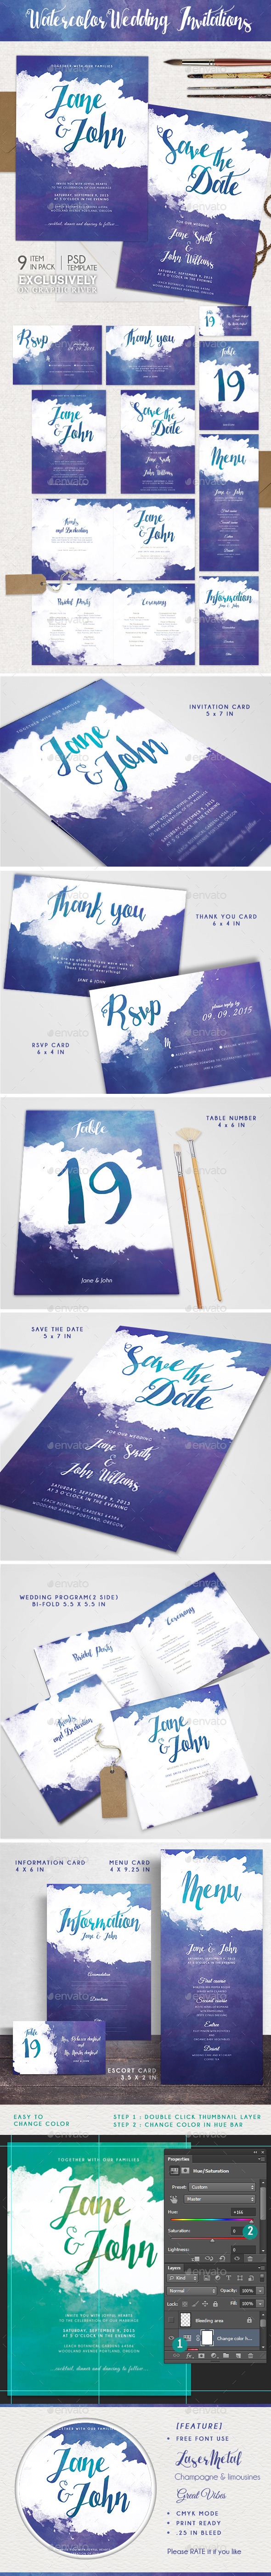 Watercolor Wedding Invitations - Weddings Cards & Invites